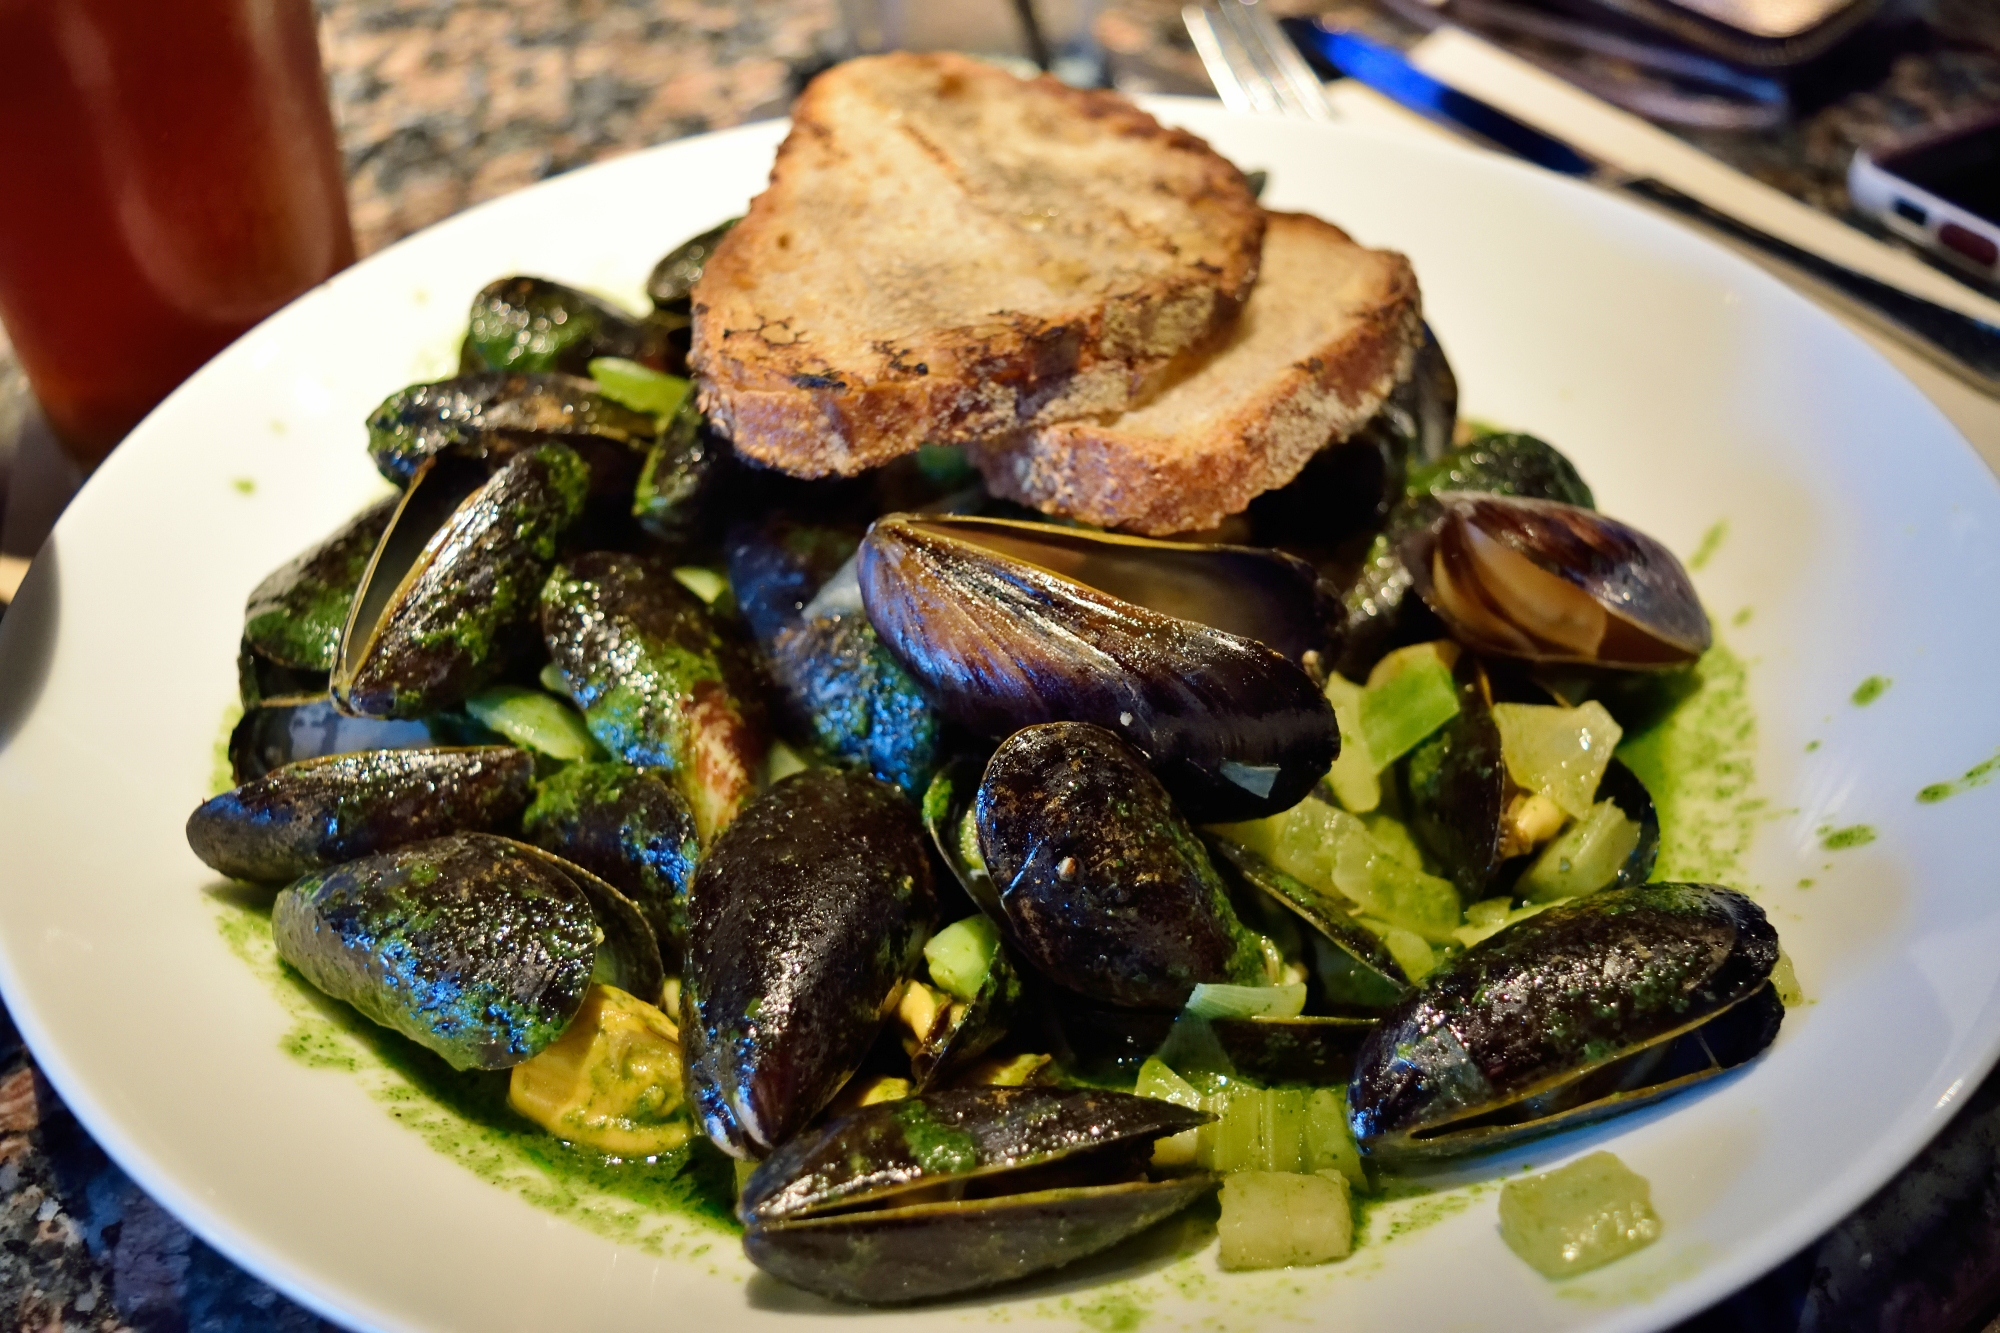 Mussels - great price for a great plate of food.